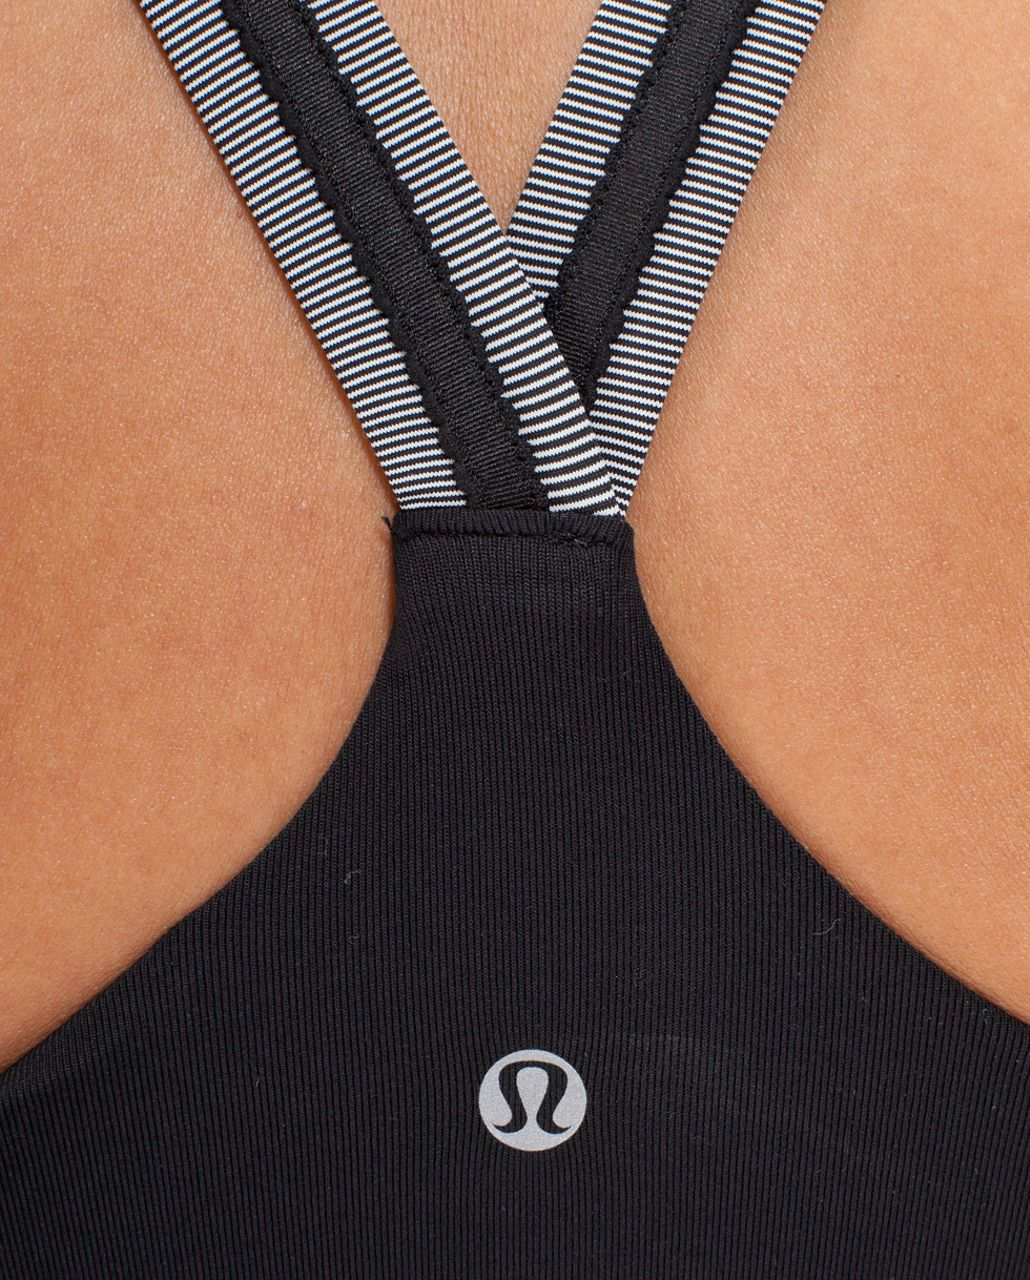 Lululemon Cross My Heart Tank - Black /  White Black Microstripe